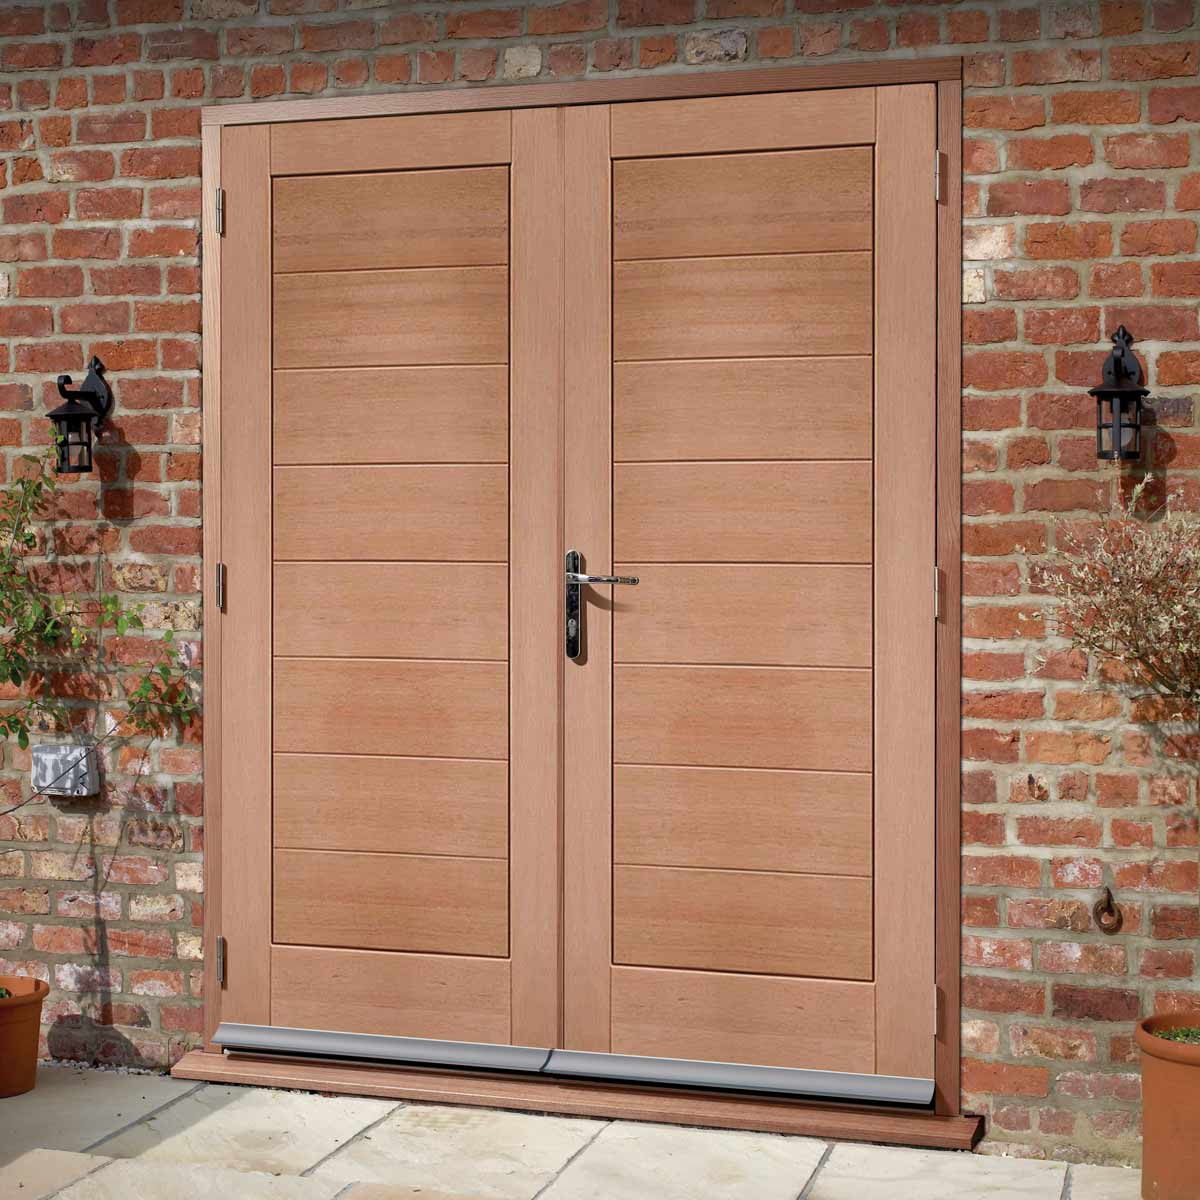 Modena External Mahogany Double Door and Frame Set - Horizontal Lining